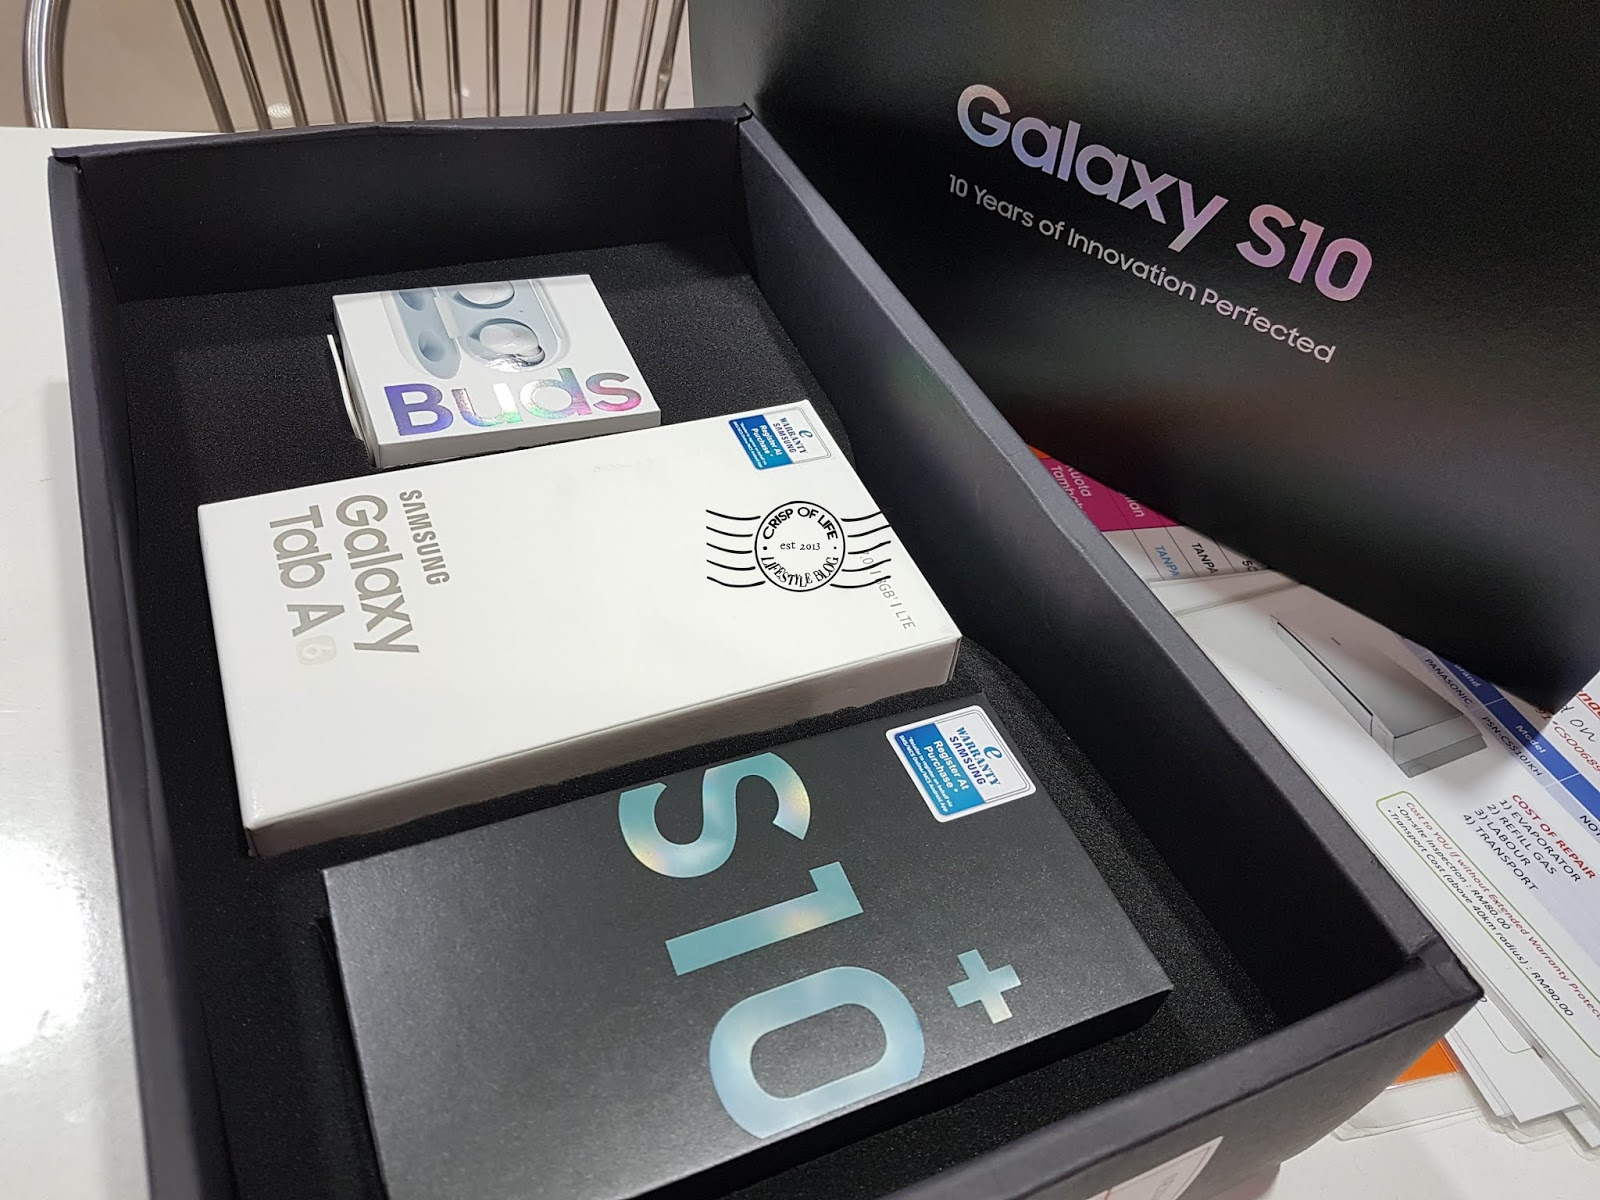 Samsung Galaxy S10+ Hands On User Review